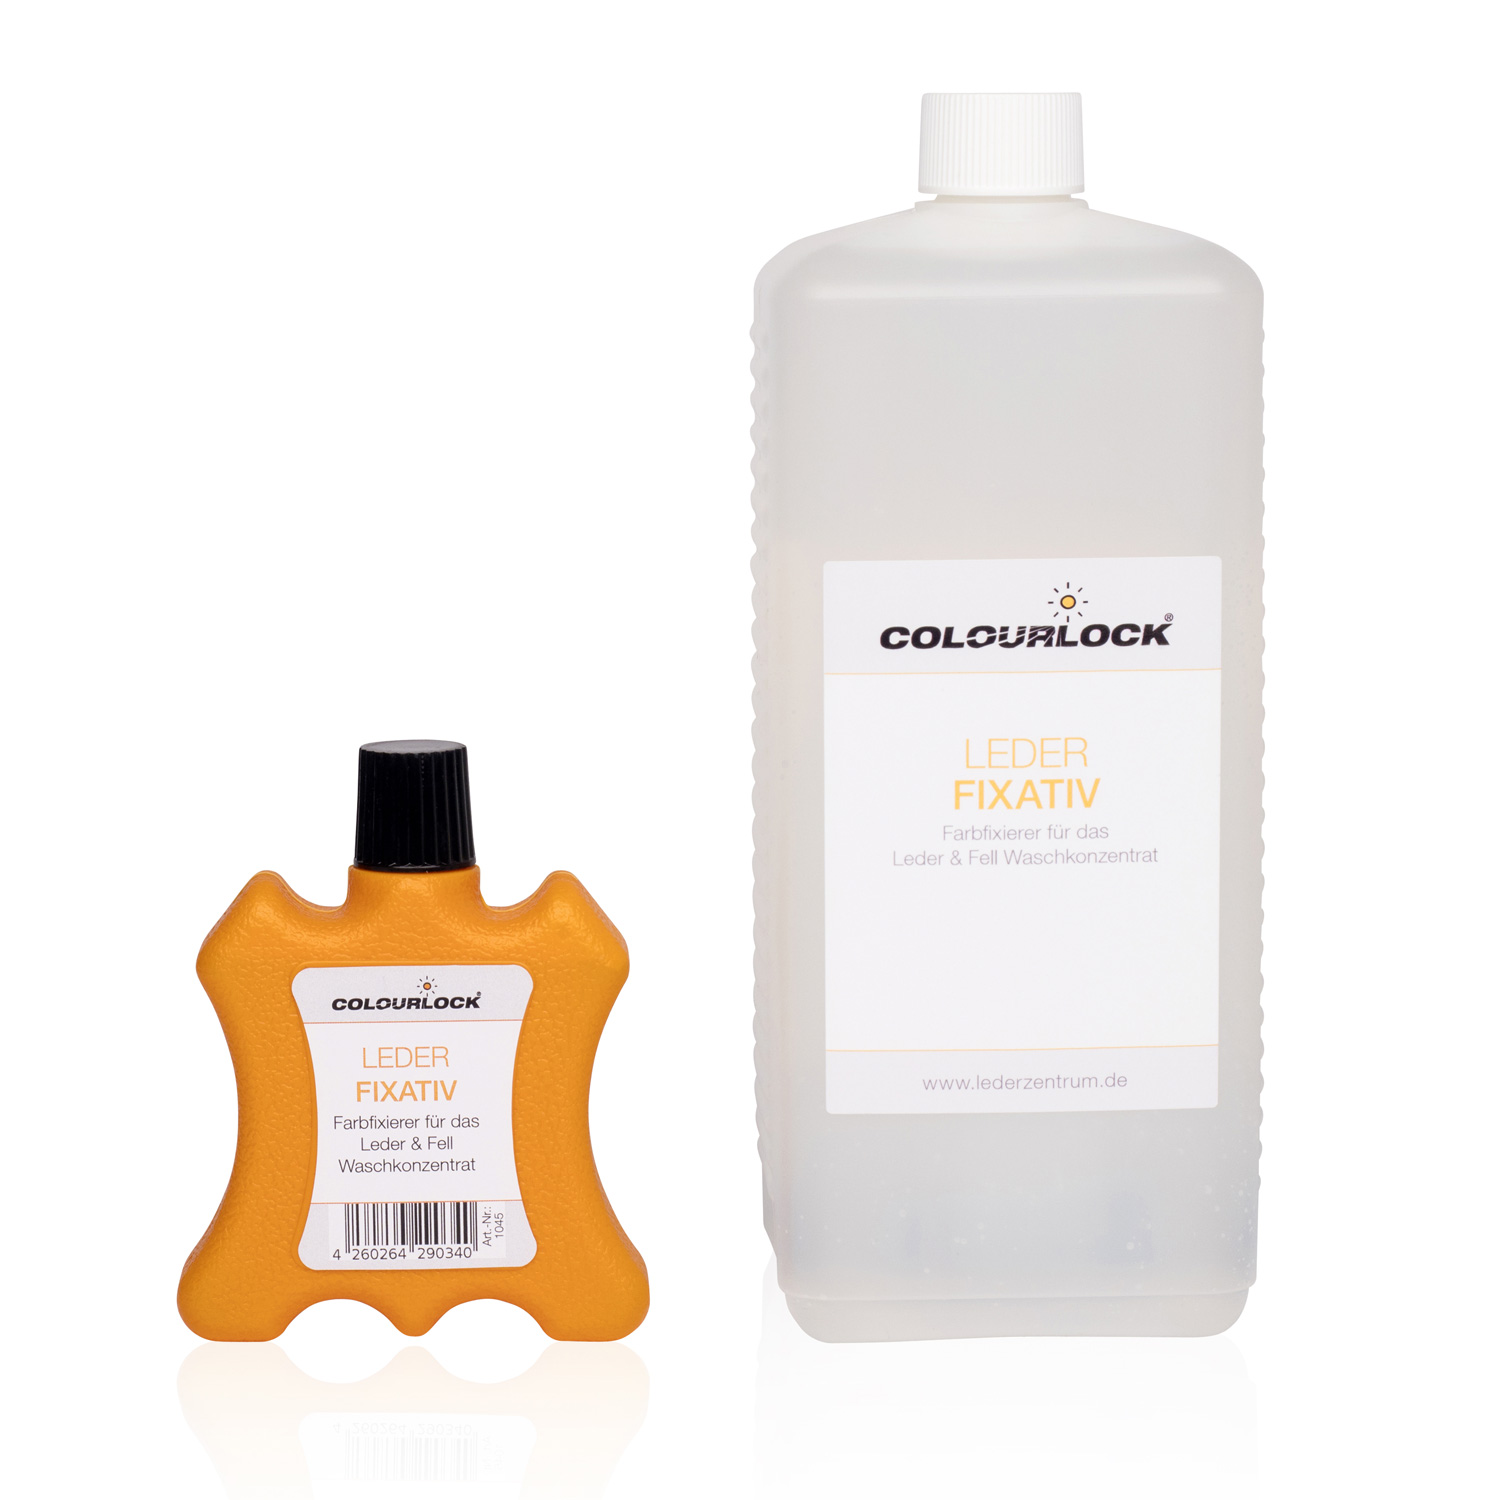 COLOURLOCK Leder-Fixativ, 100 ml